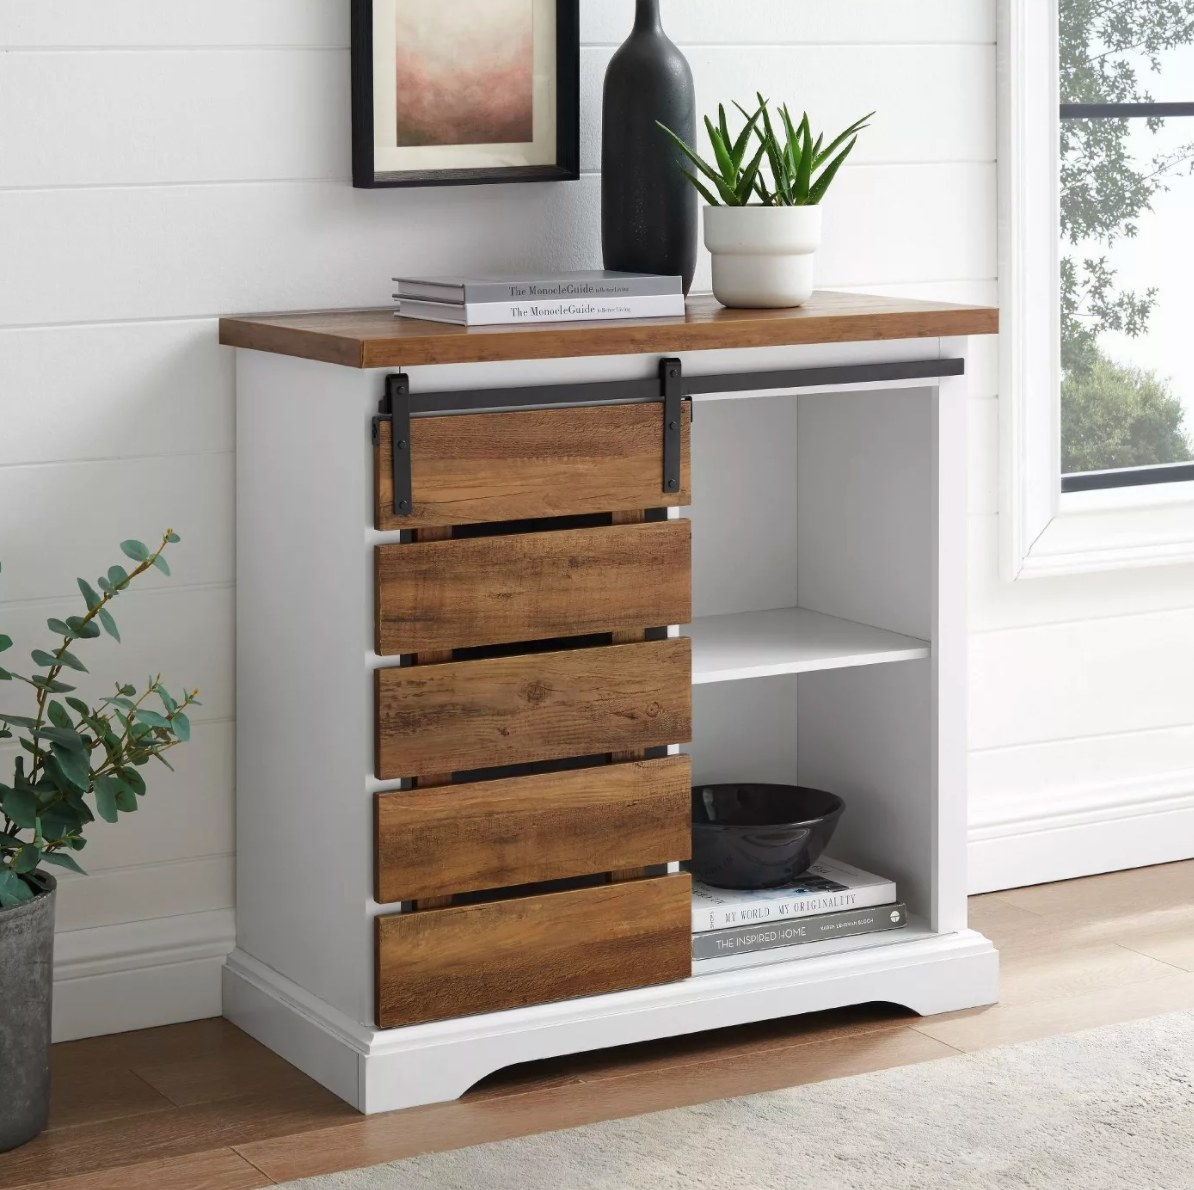 The rustic farmhouse cabinet holding books, bowls, and planters